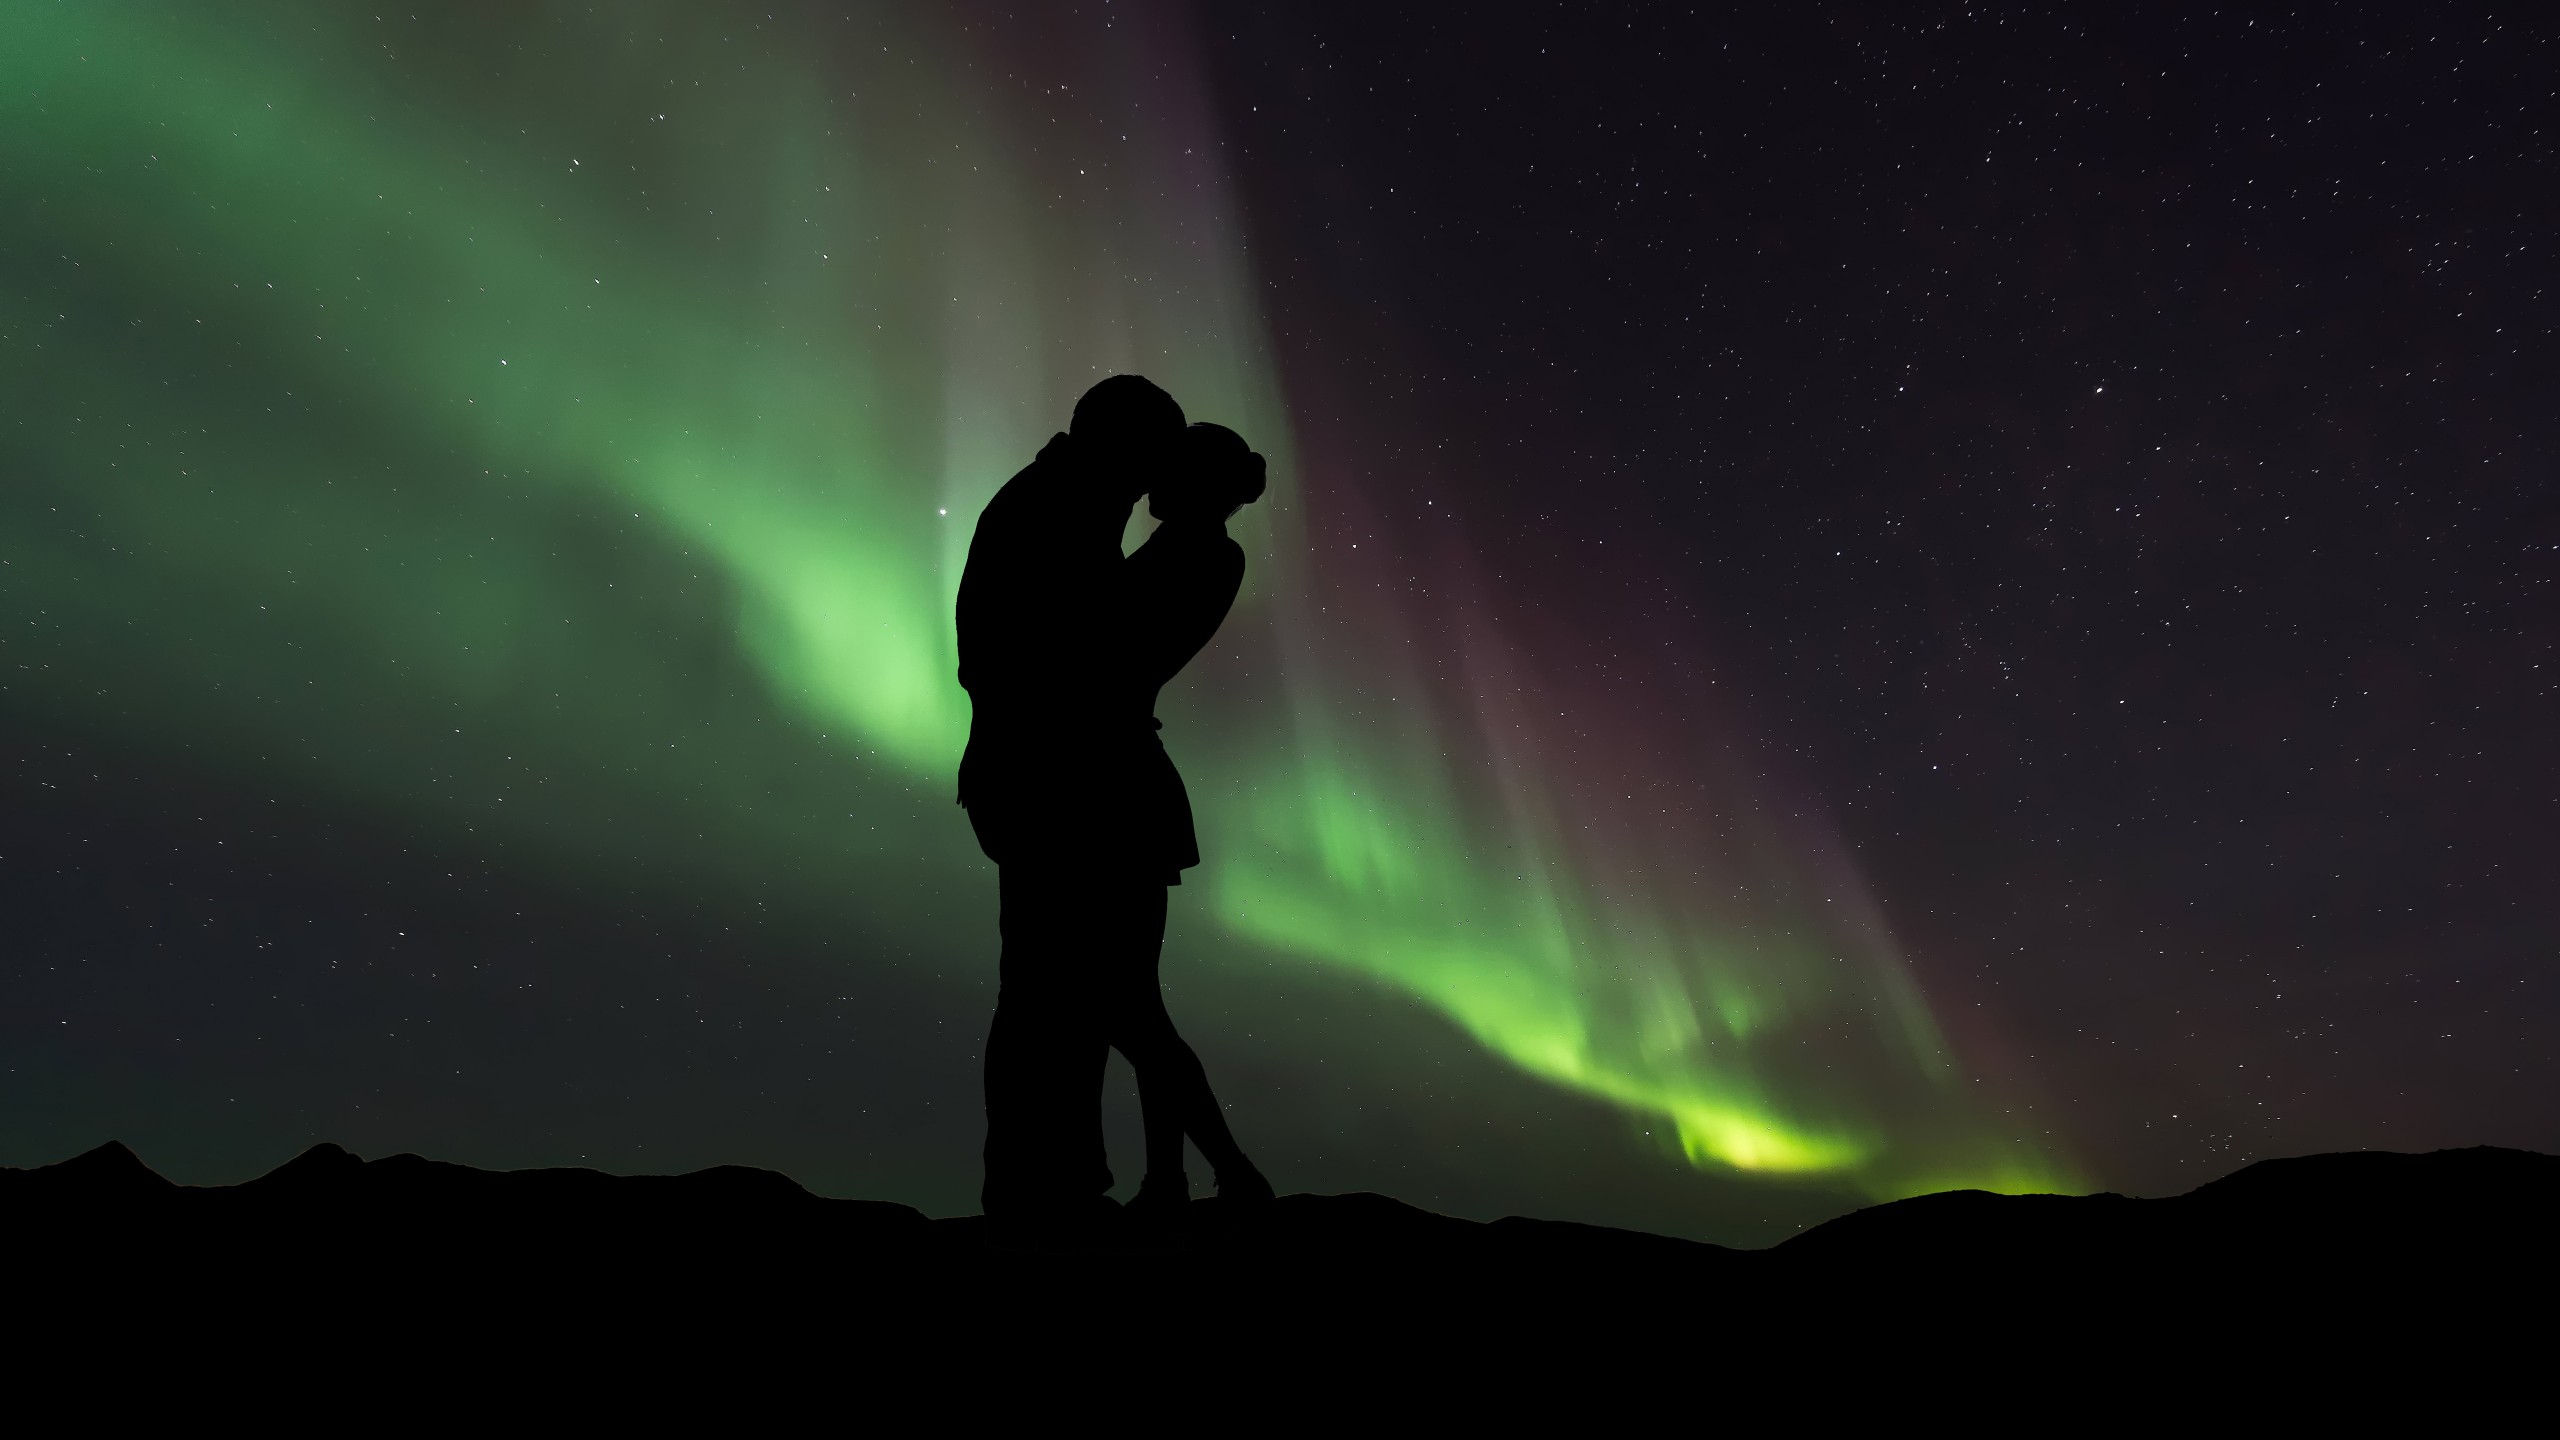 Boy And Girl Kissing Hd Wallpapers Couple Silhouette Northern Lights 5k Wallpapers Hd